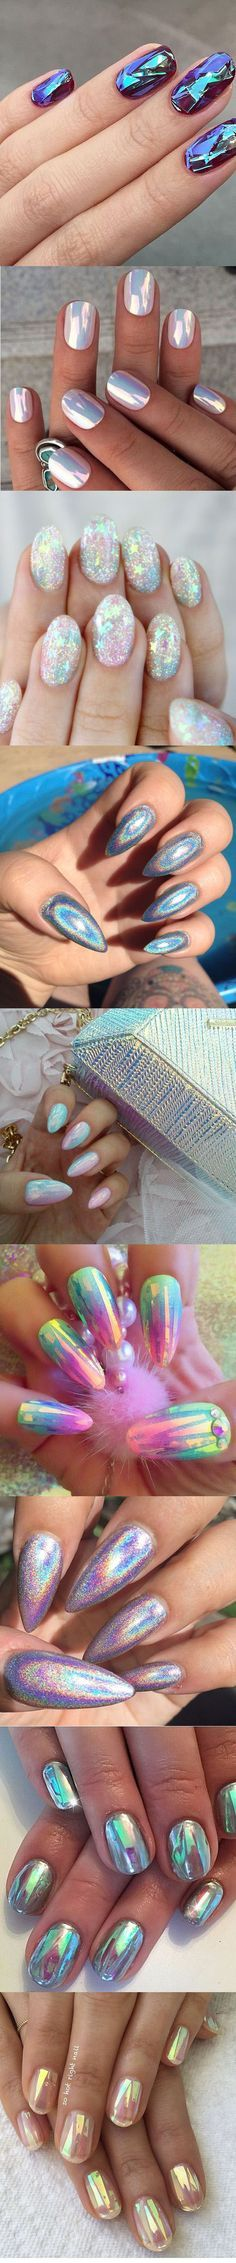 Holographic mermaid nails #manicure | http://ko-te.com by /evatornado/ |